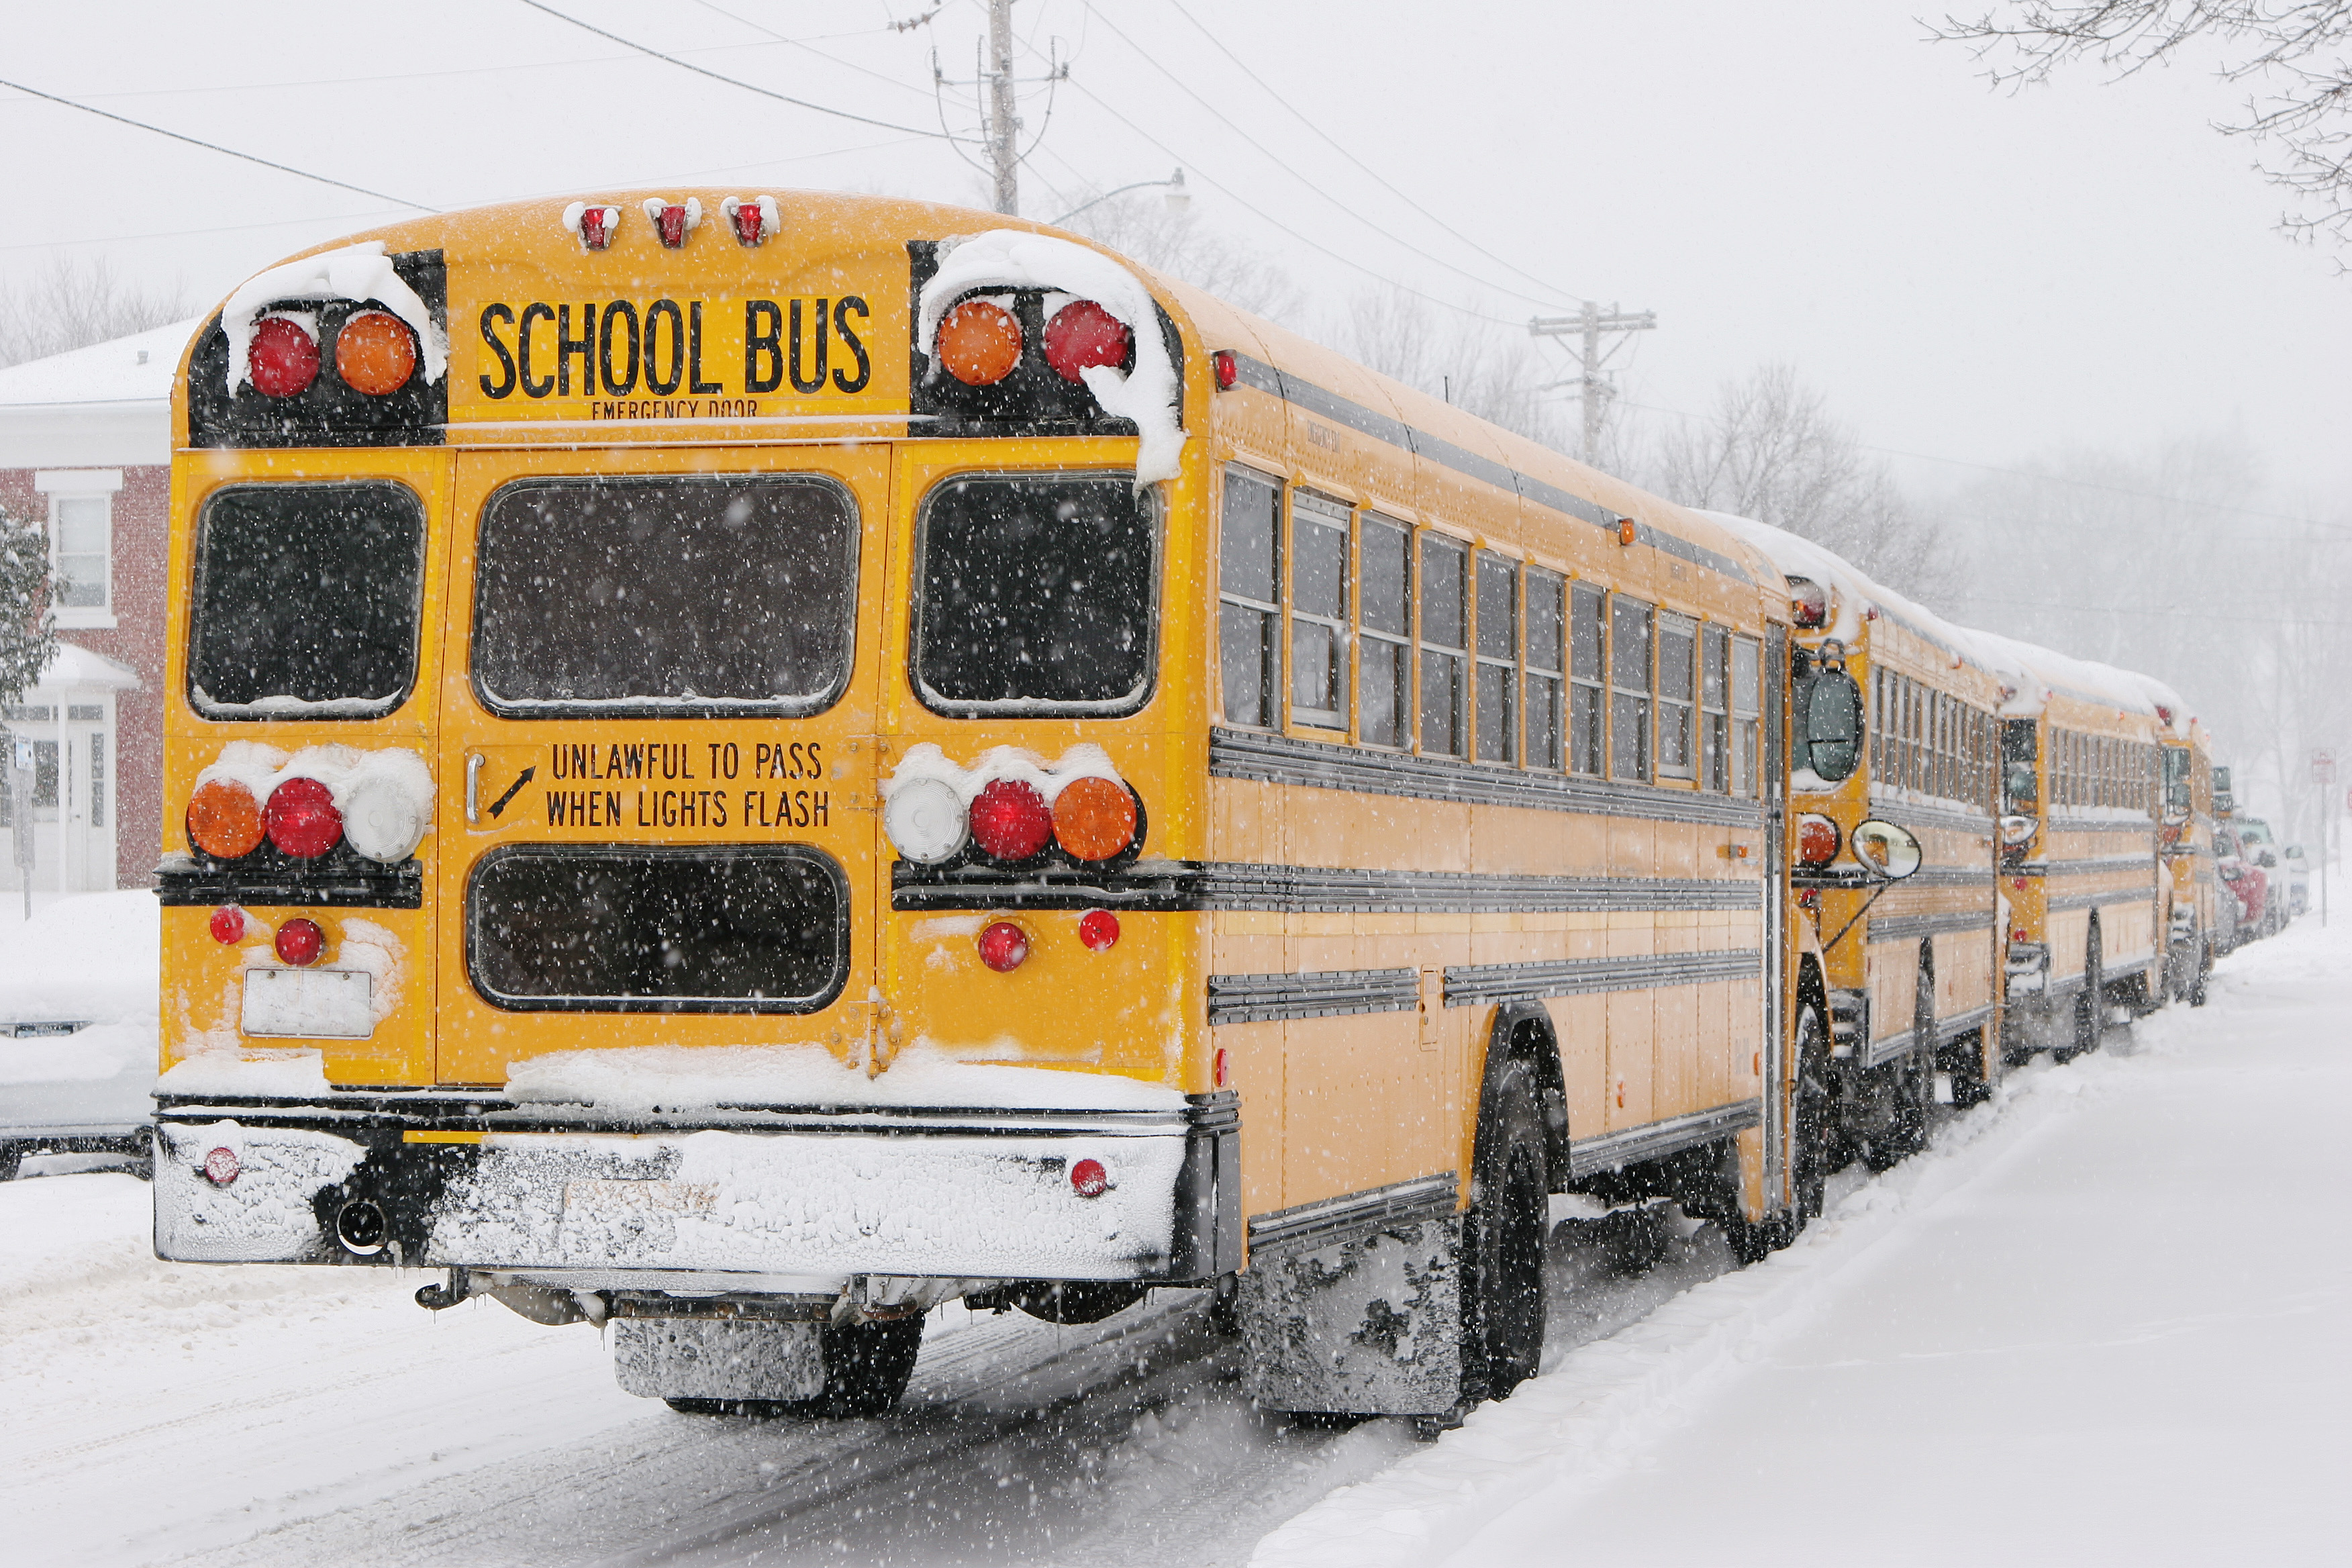 School's Out Early! Buses in Snow